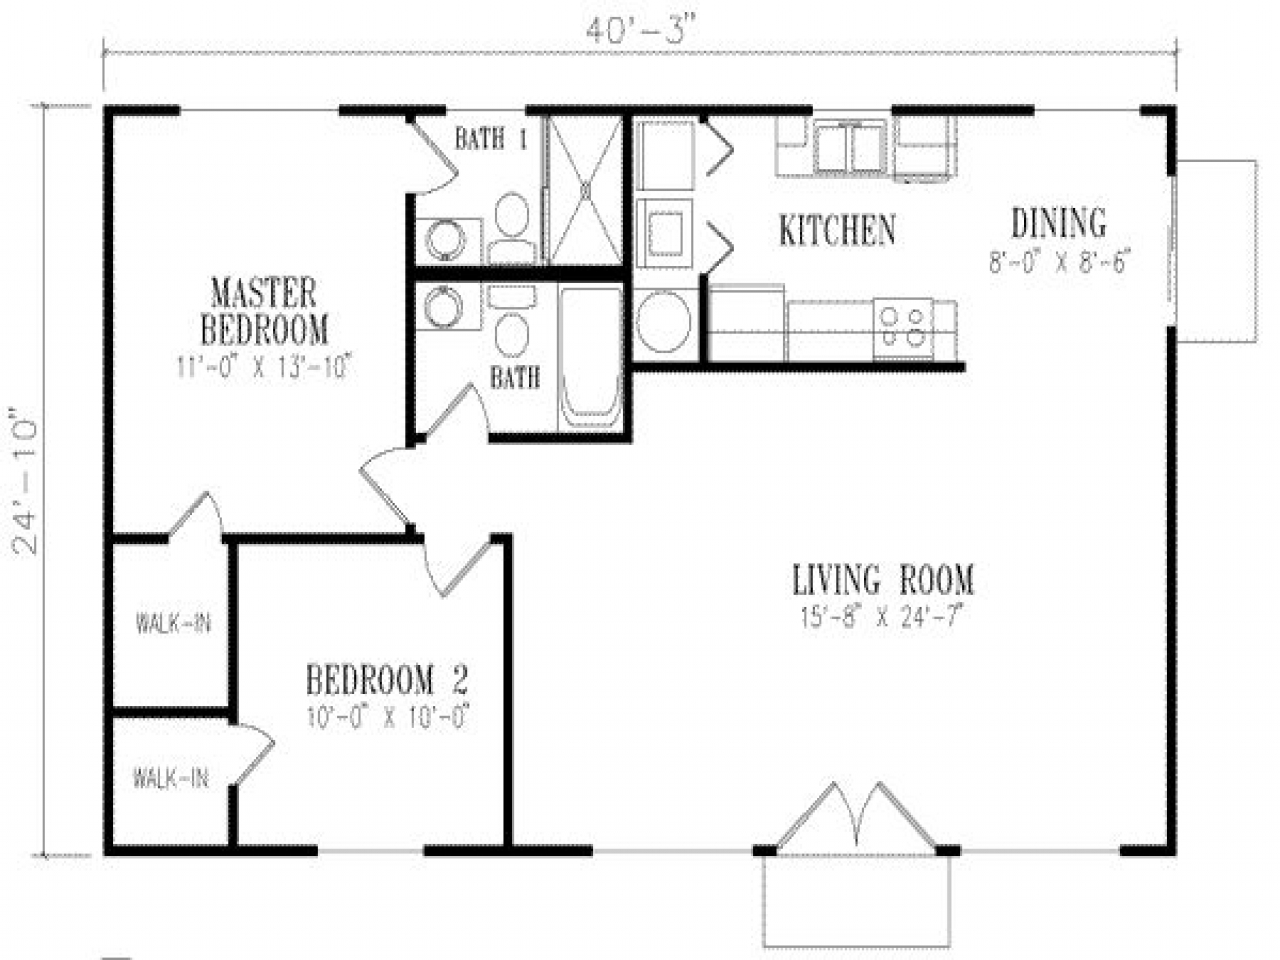 1000 Square Foot House Plans 1 Bedroom 900 Square Foot